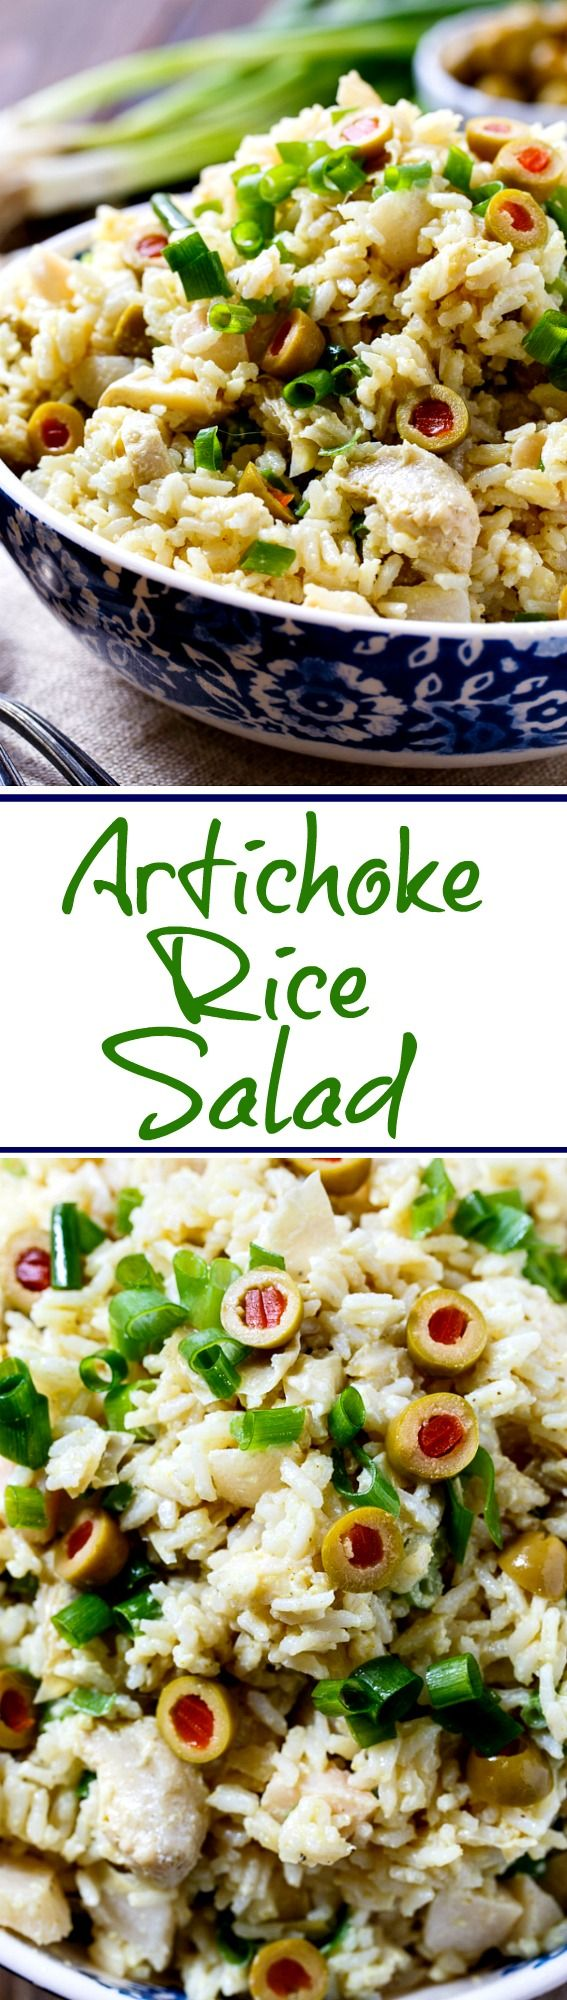 Artichoke-Rice Salad- a chilled rice salad flavored with curry powder. Perfect for summer potlucks.